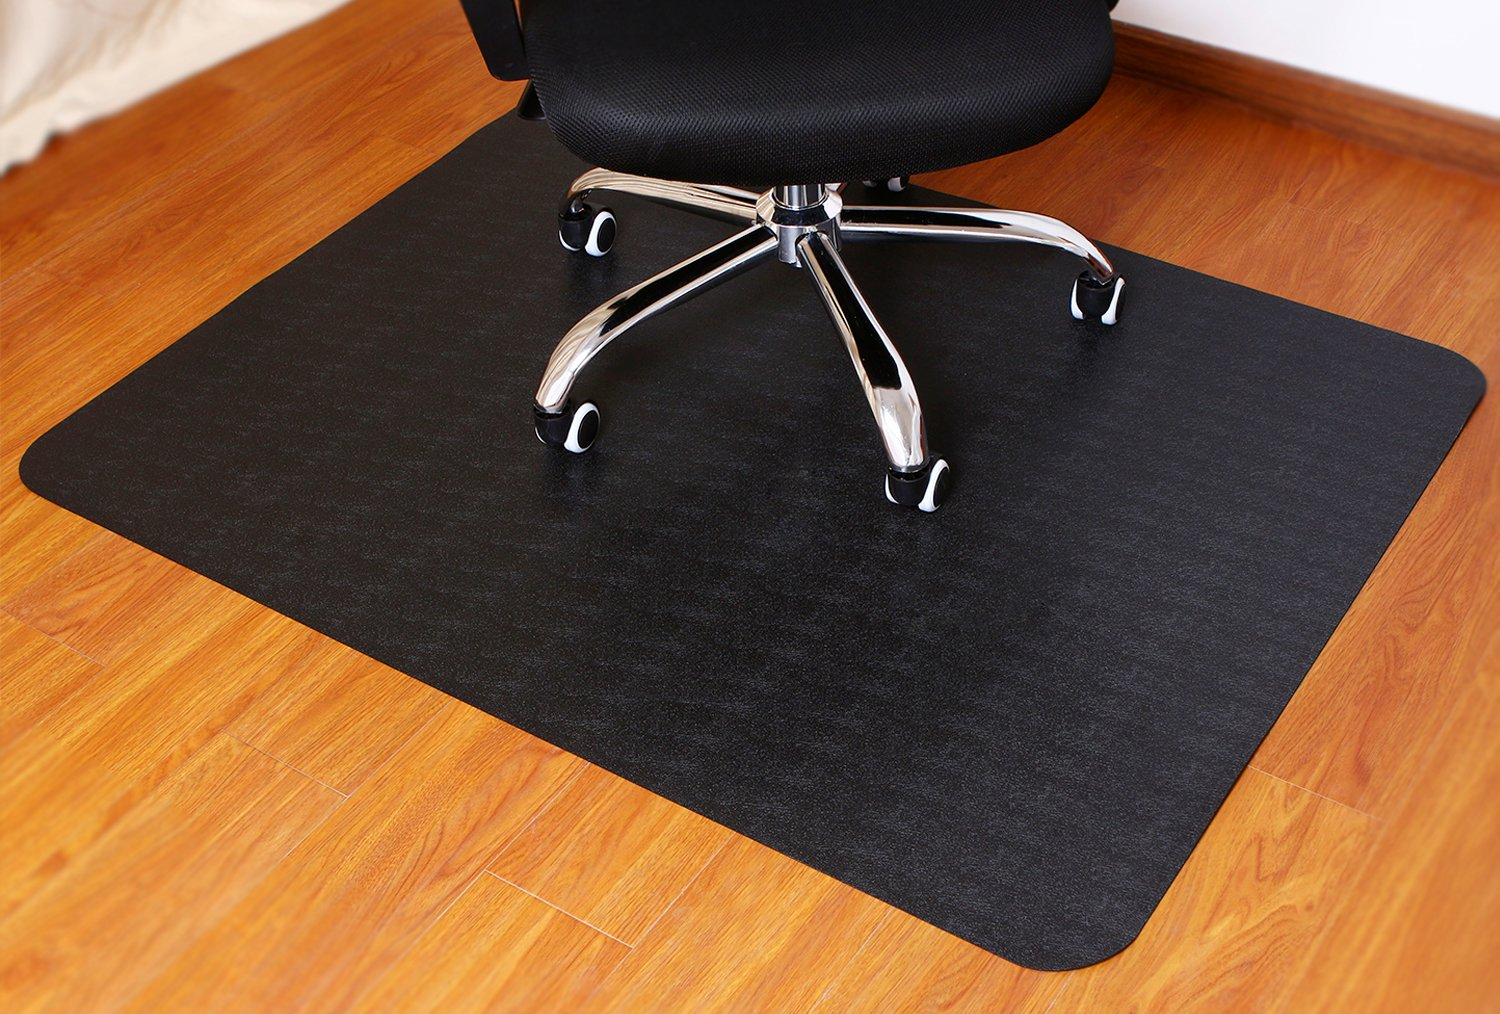 Polytene Office Chair Mat, 48''x36'',Hard Floor Protection Only with Rectangular Shaped Clear Anti Slide Film on The Underside, and mat Finish on The top, 1.55mm, Black